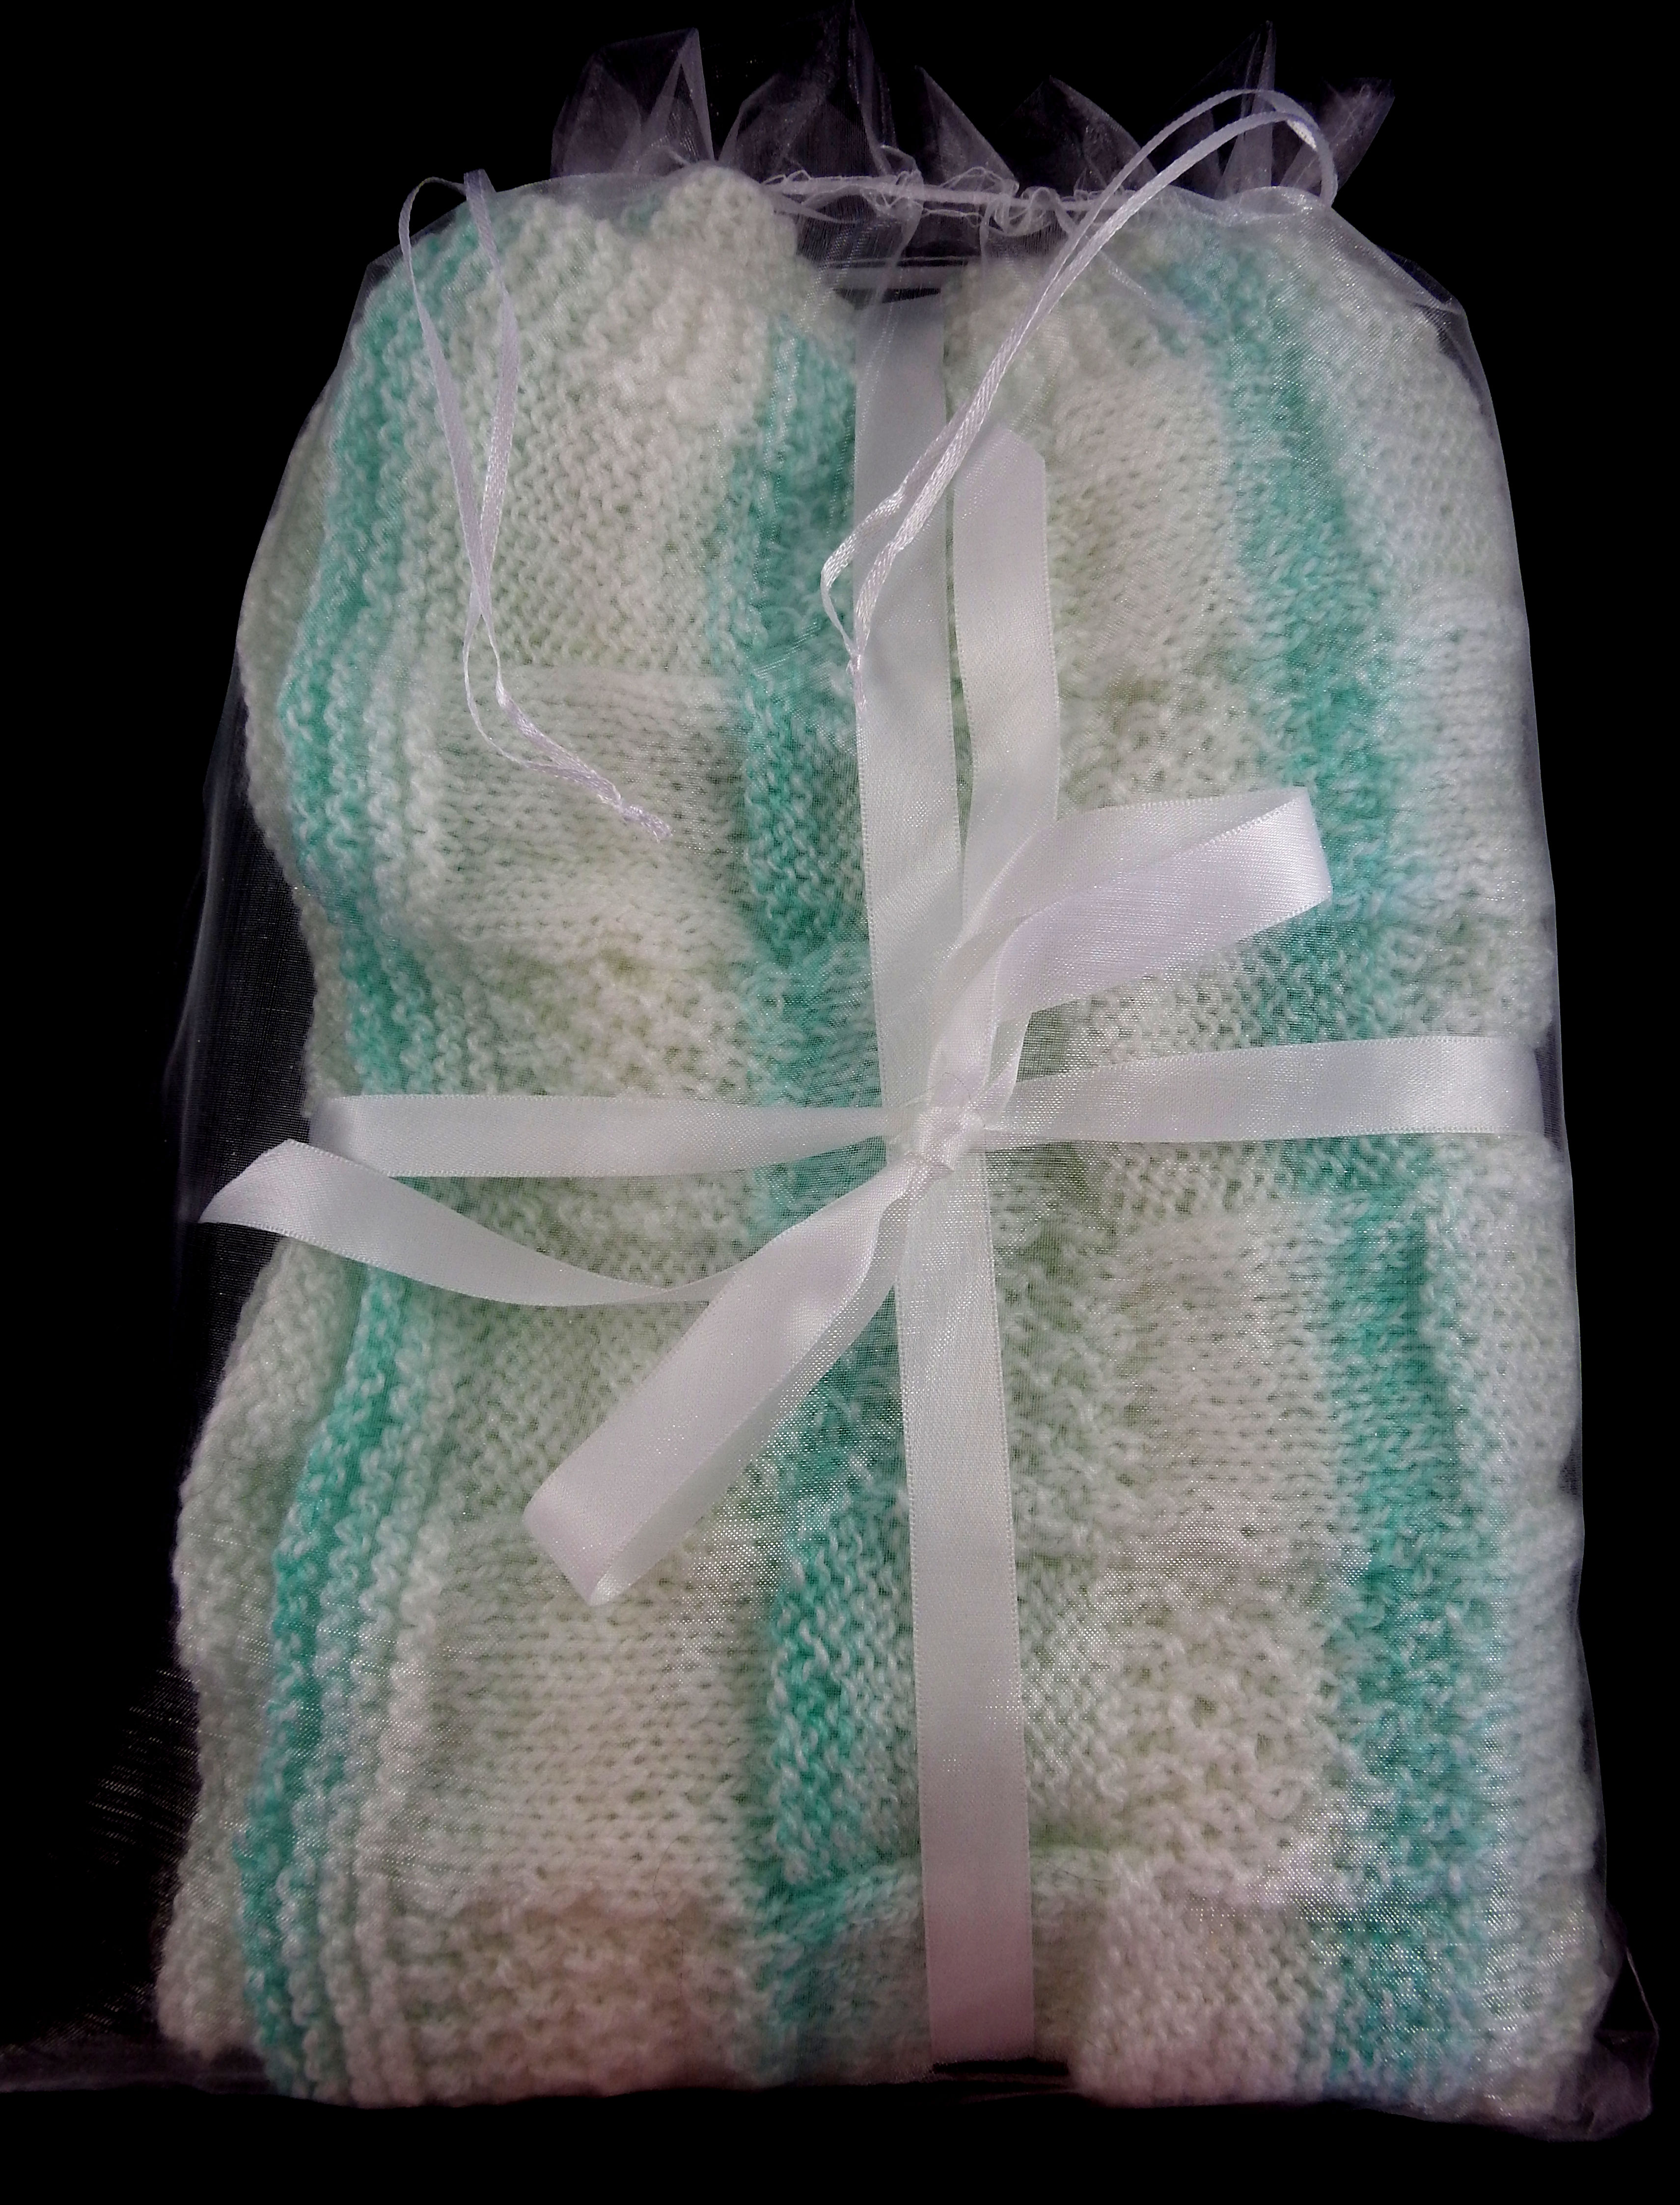 Knitted Green And White Patterned Baby Blanket - FREE SHIPPING from Dreams  Of Avalon